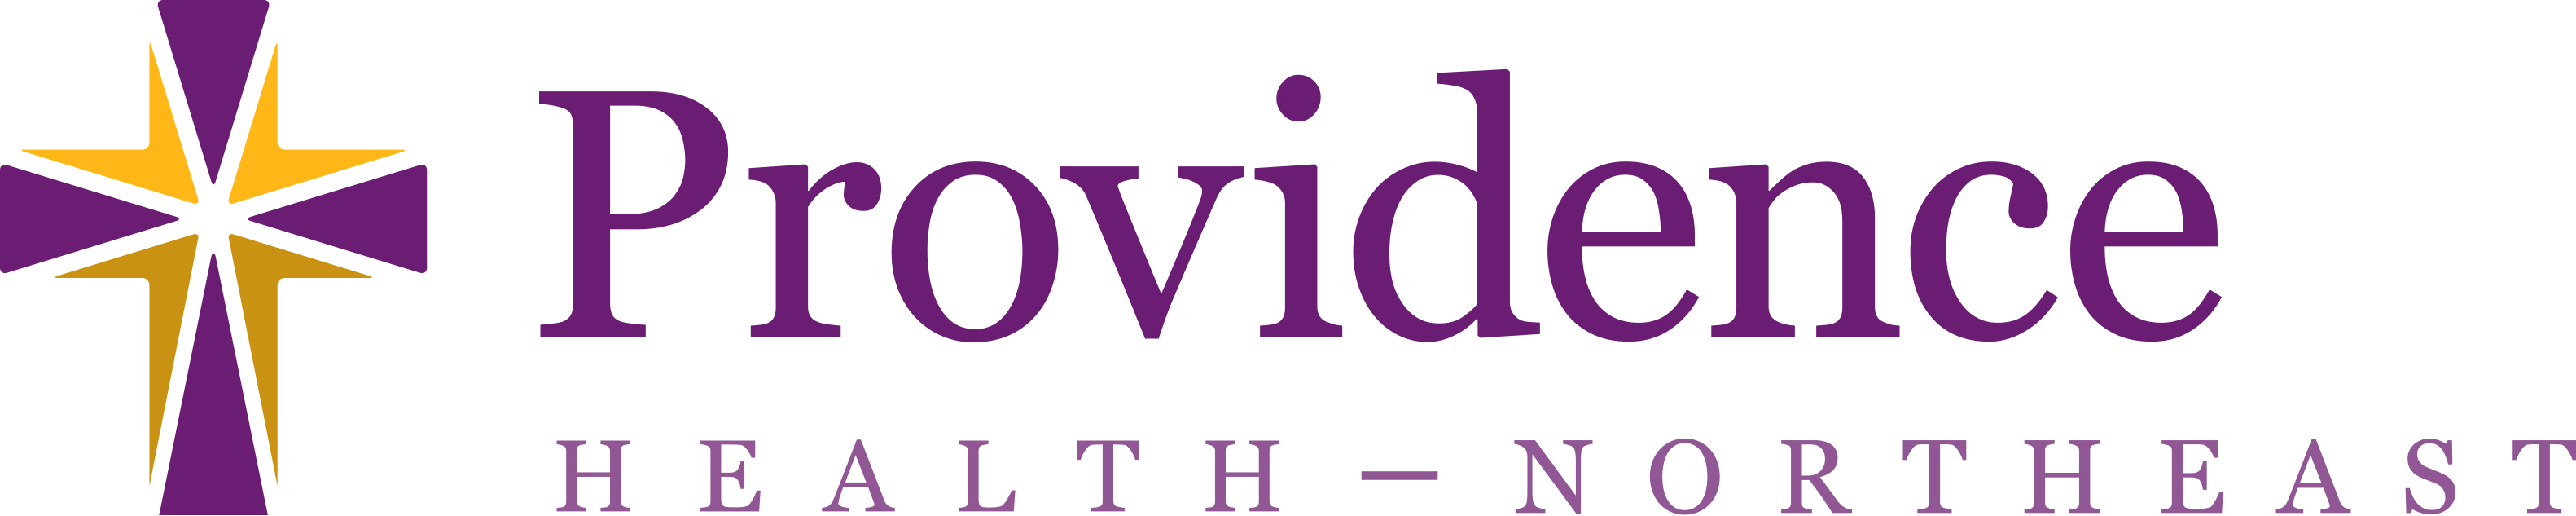 providence health northeast